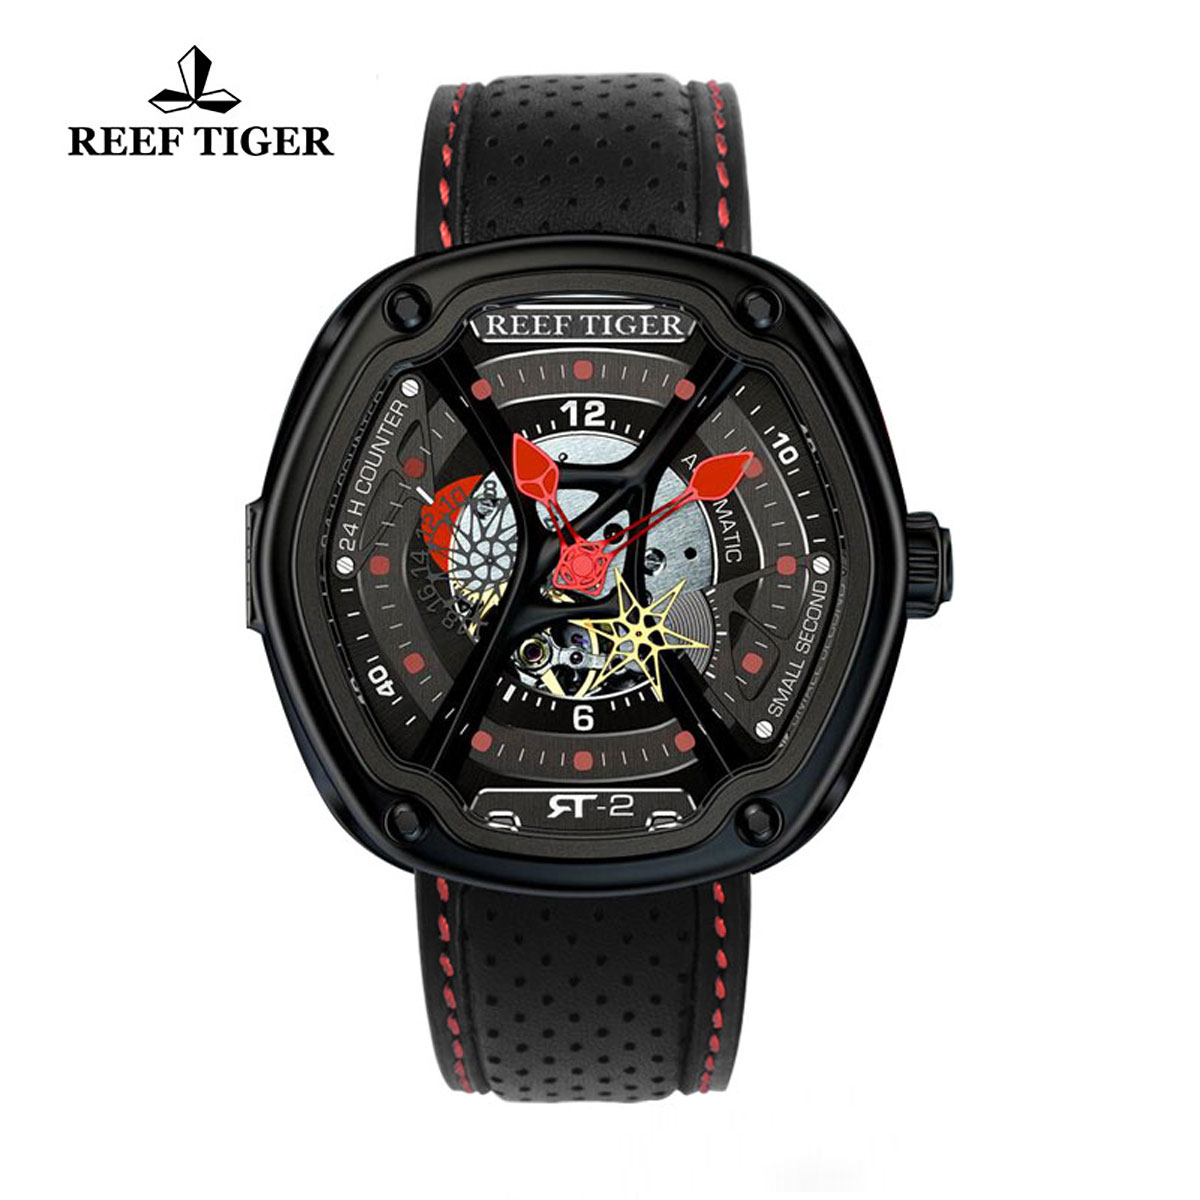 Reef Tiger Gaia's Light Sport Watches Automatic Watch PVD Case Leather Strap Watch RGA90S7-BSBL